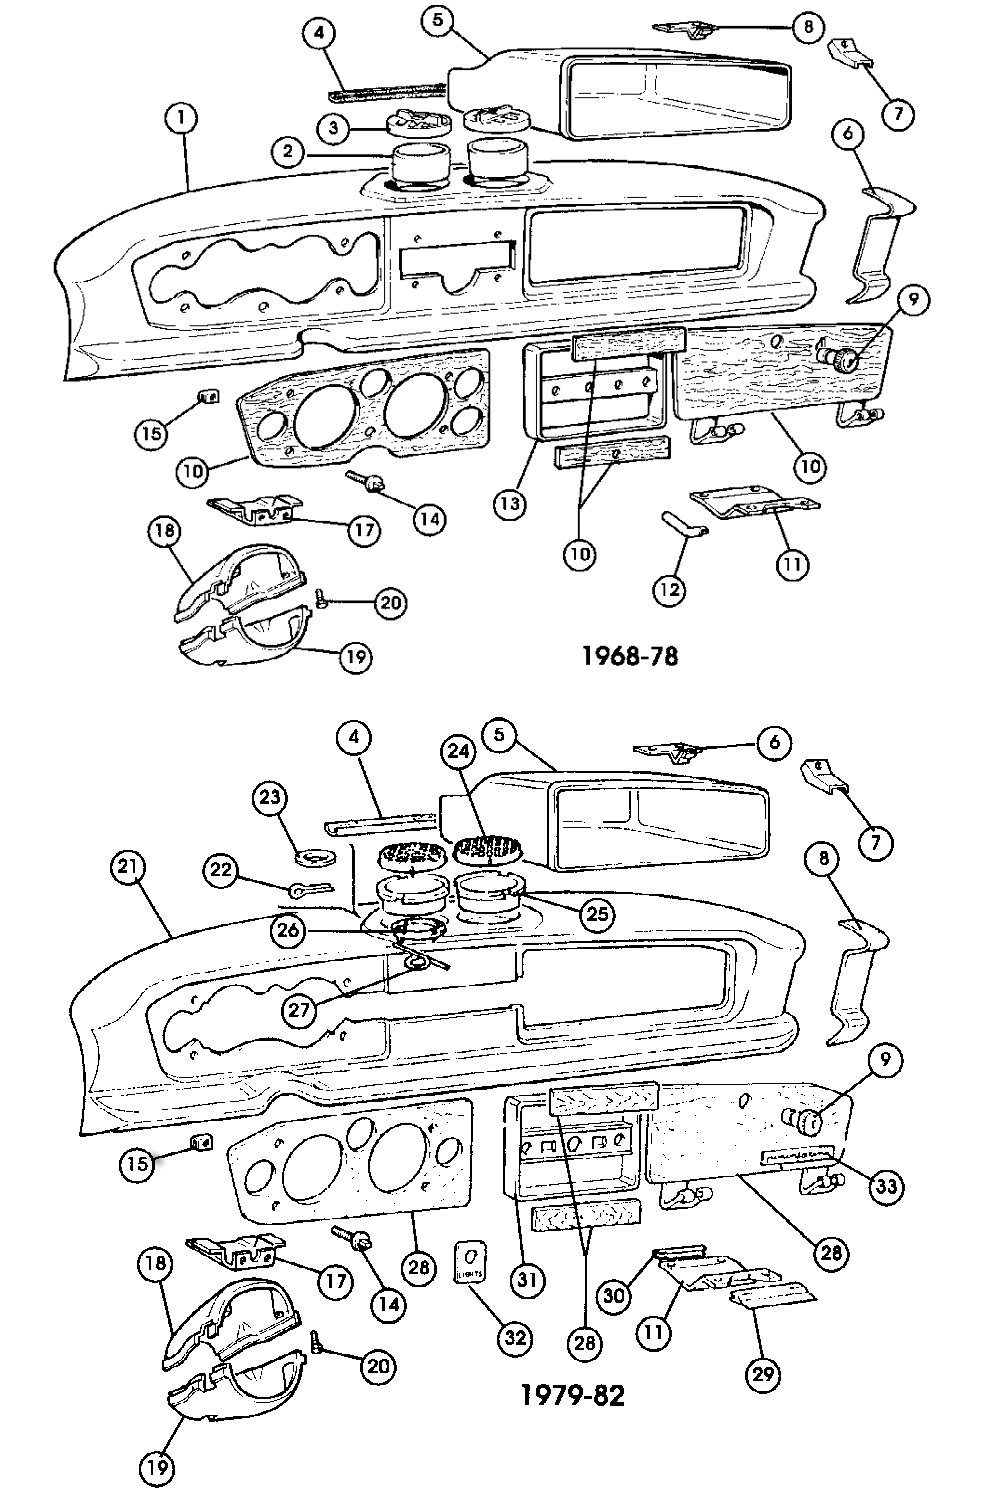 Fiat 131 Wiring Diagram Yto 124 Facia Trim Etc 500 And Classic Abarth Specialists